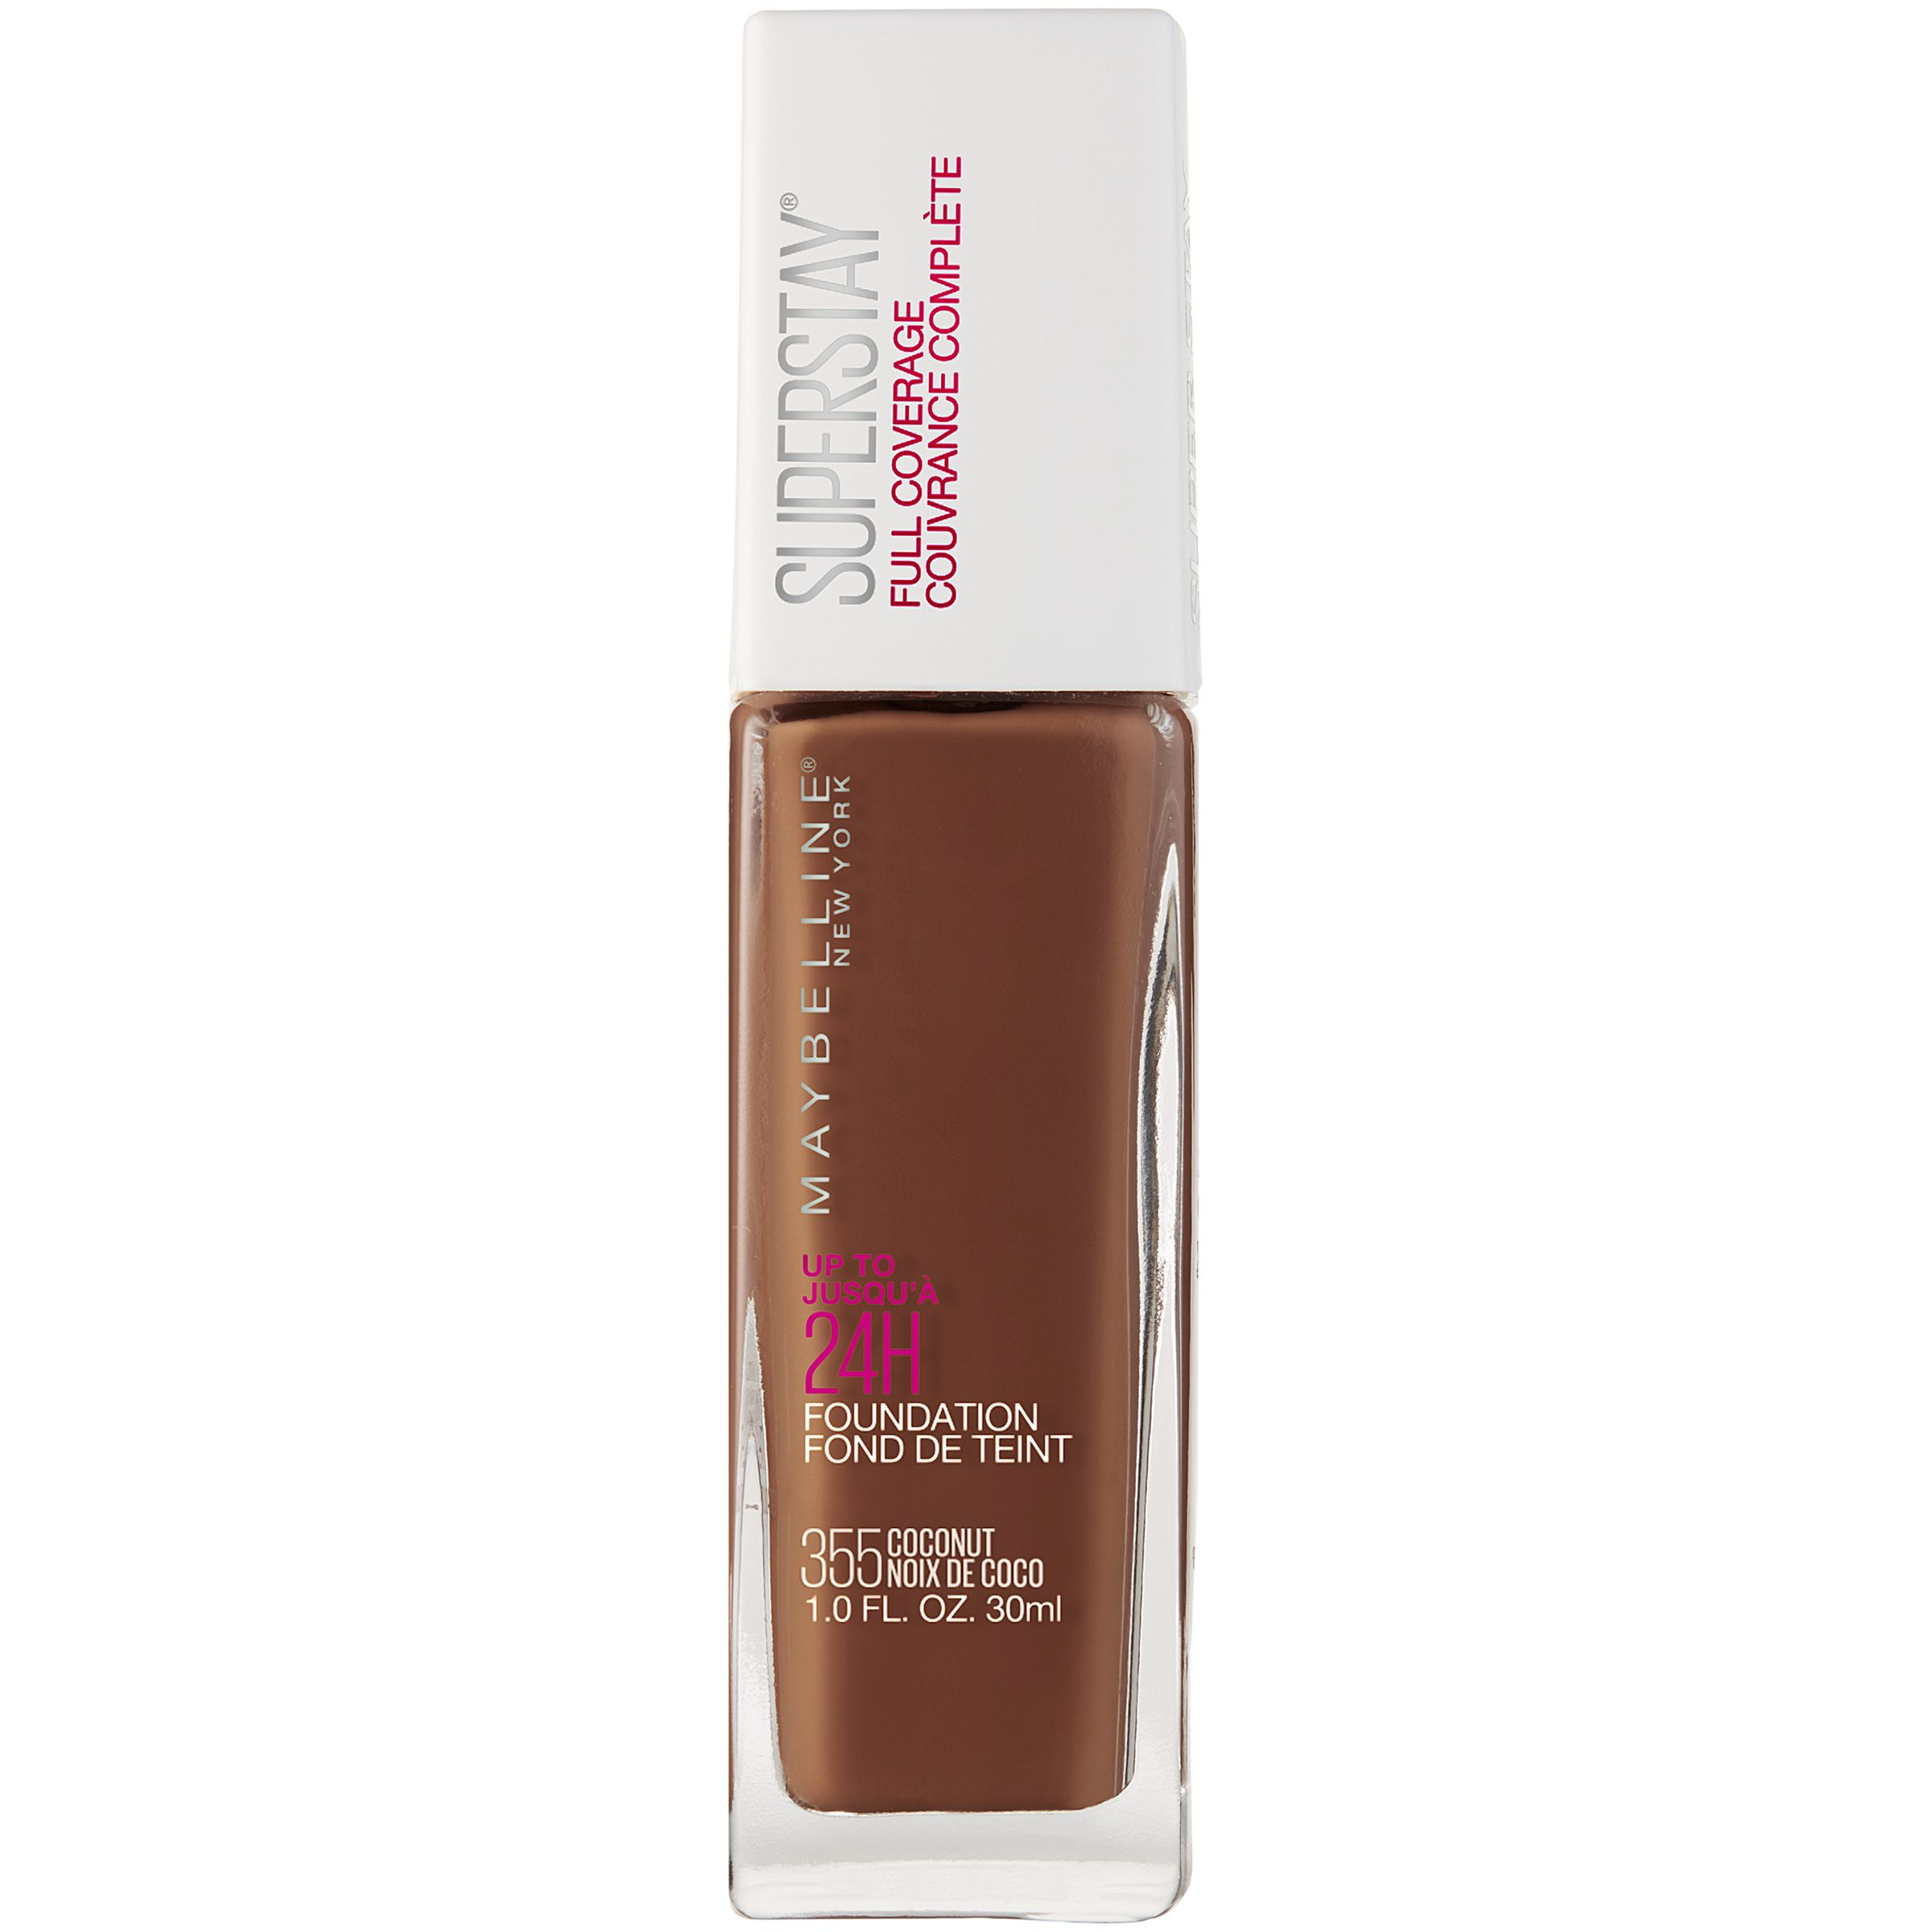 d6908a2eff1 The 10 Best Full Coverage Foundations at Walmart in 2019